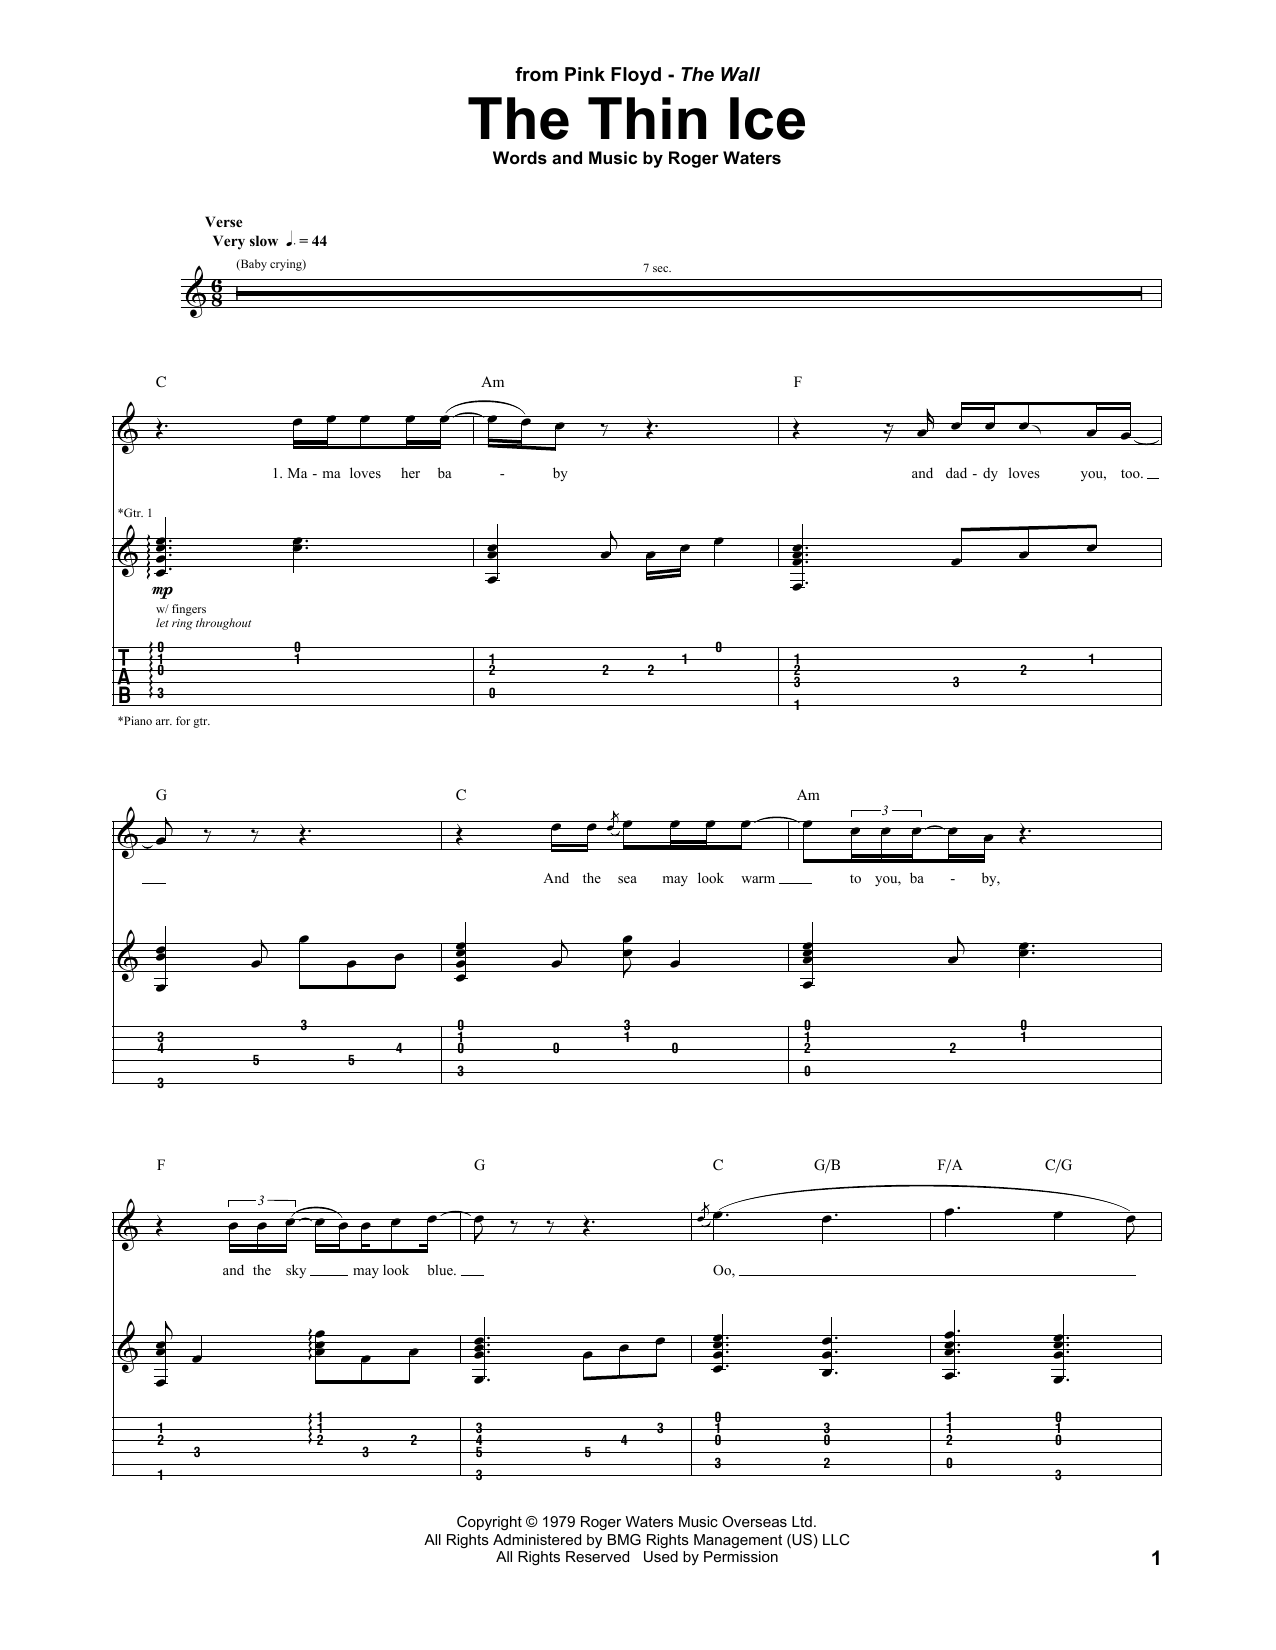 The Thin Ice Sheet Music